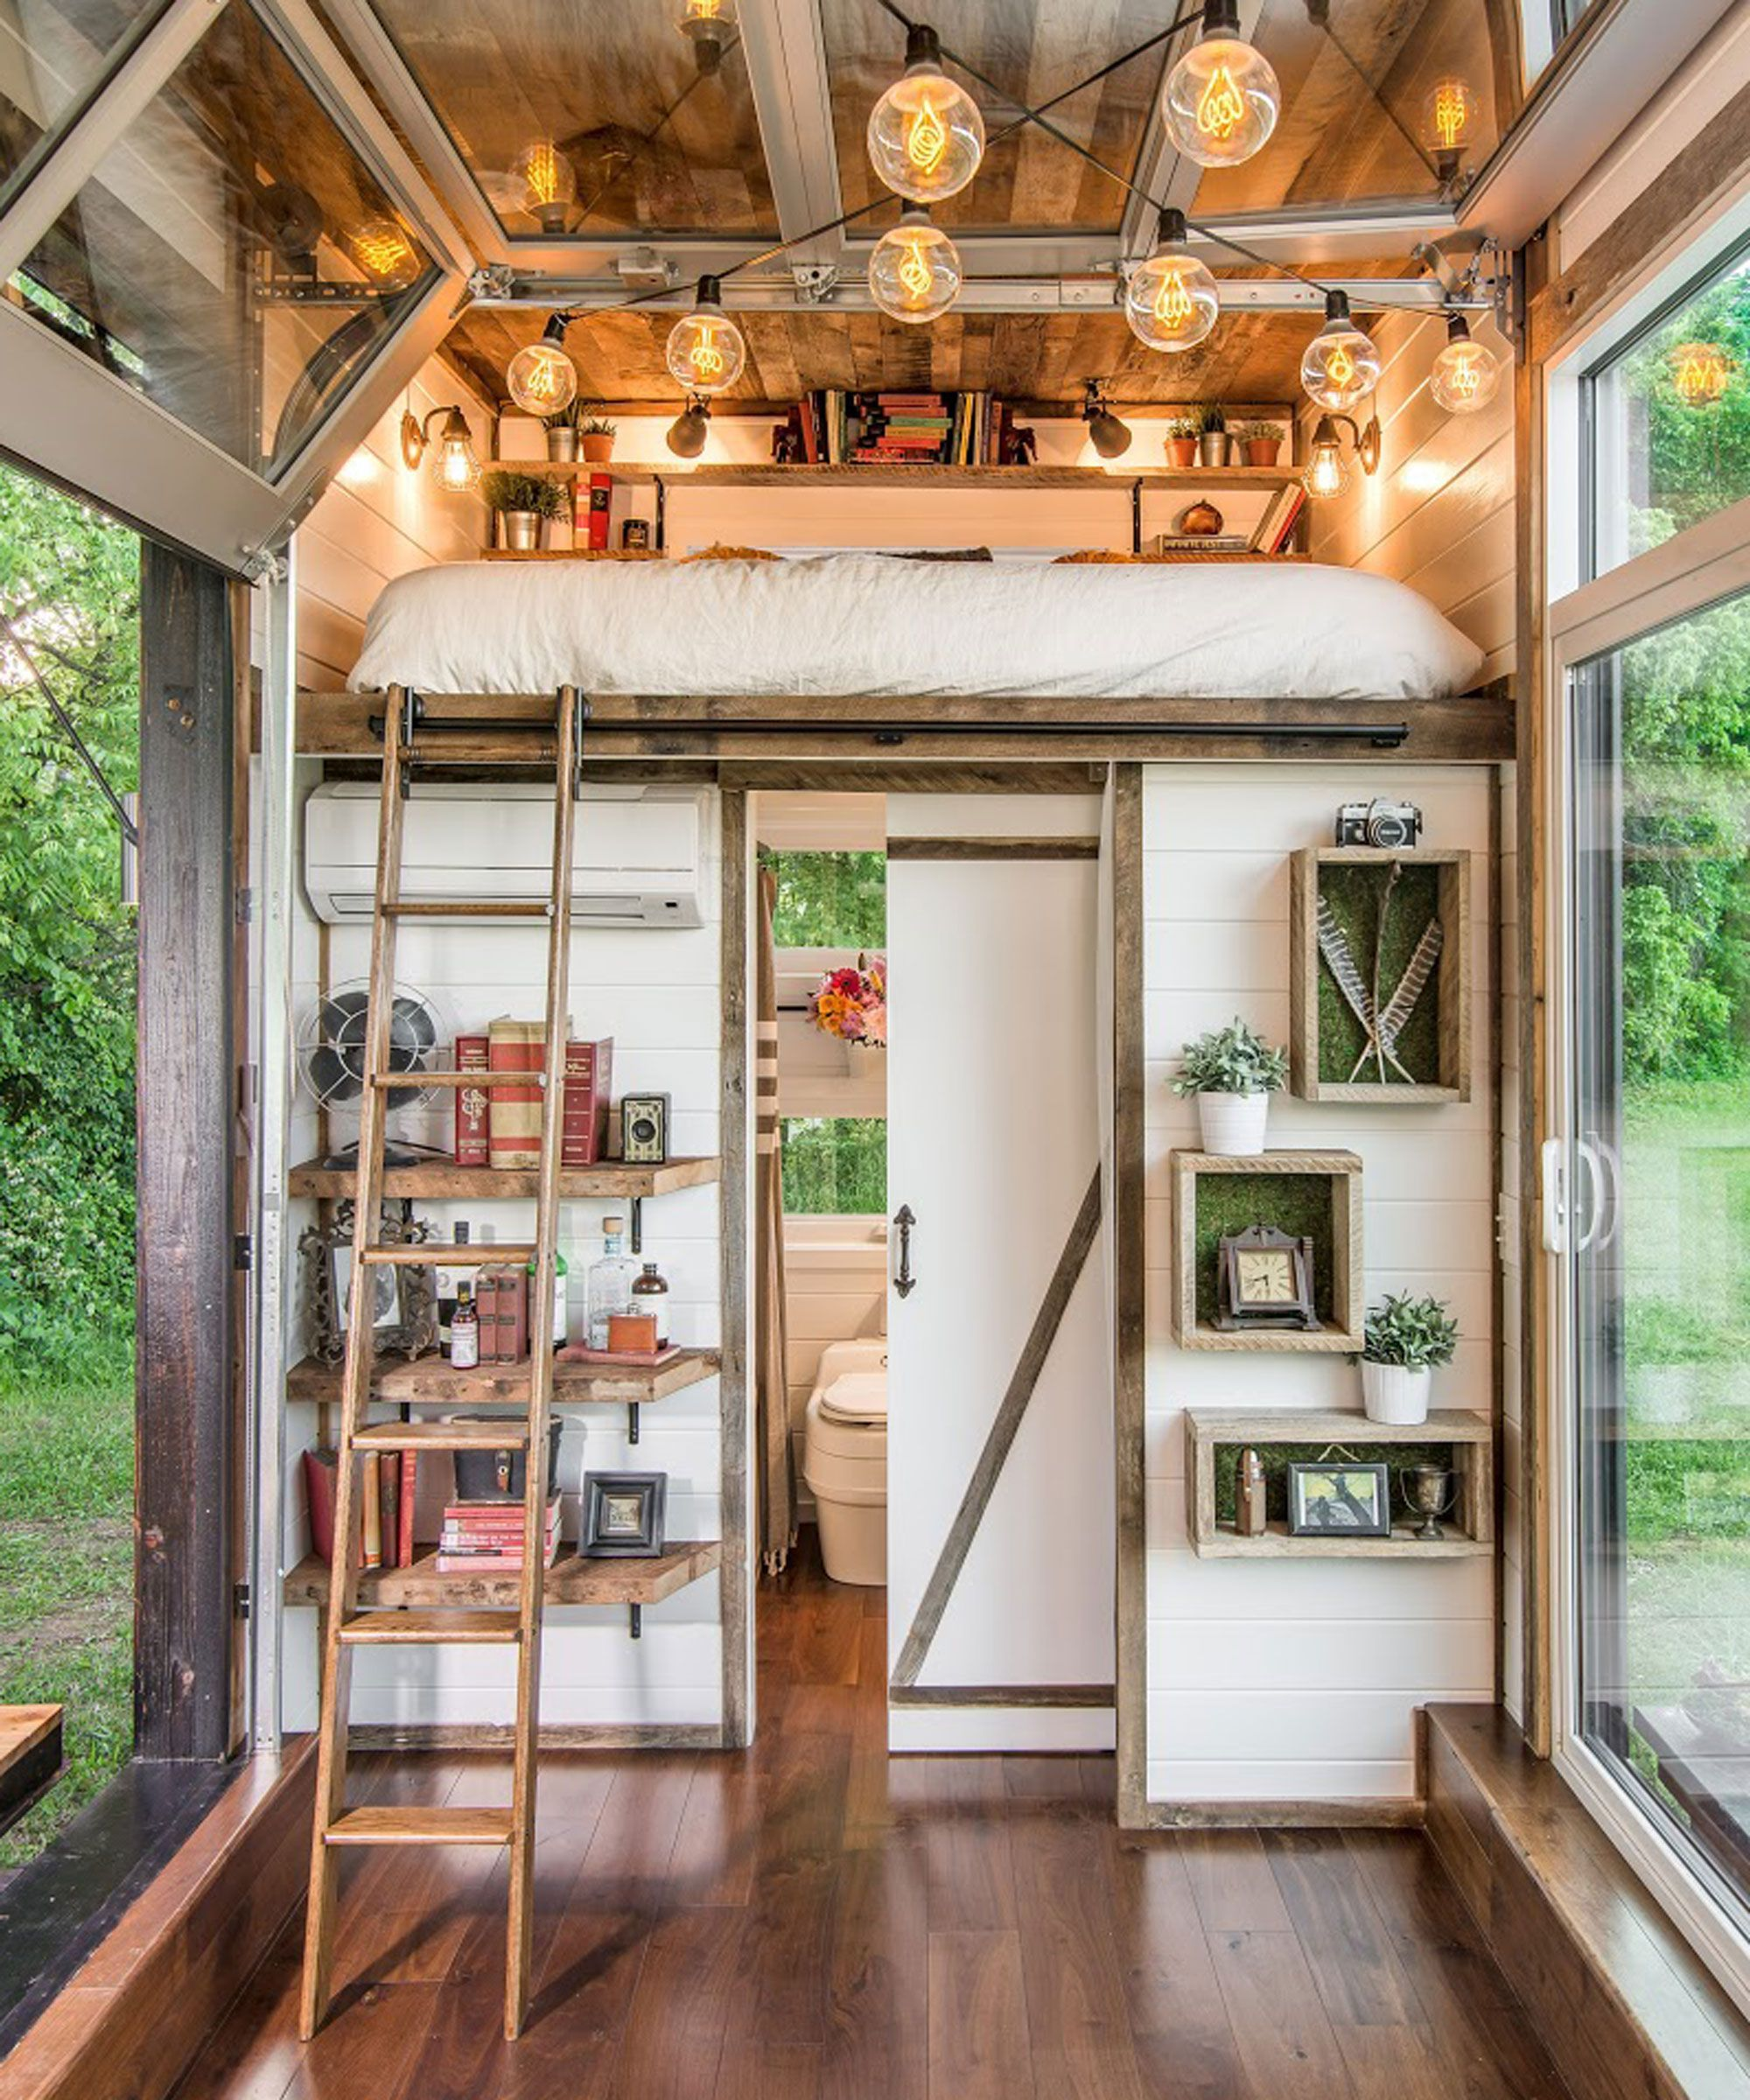 This Gorgeous Tiny House Is Proof That Size Doesn't Matter